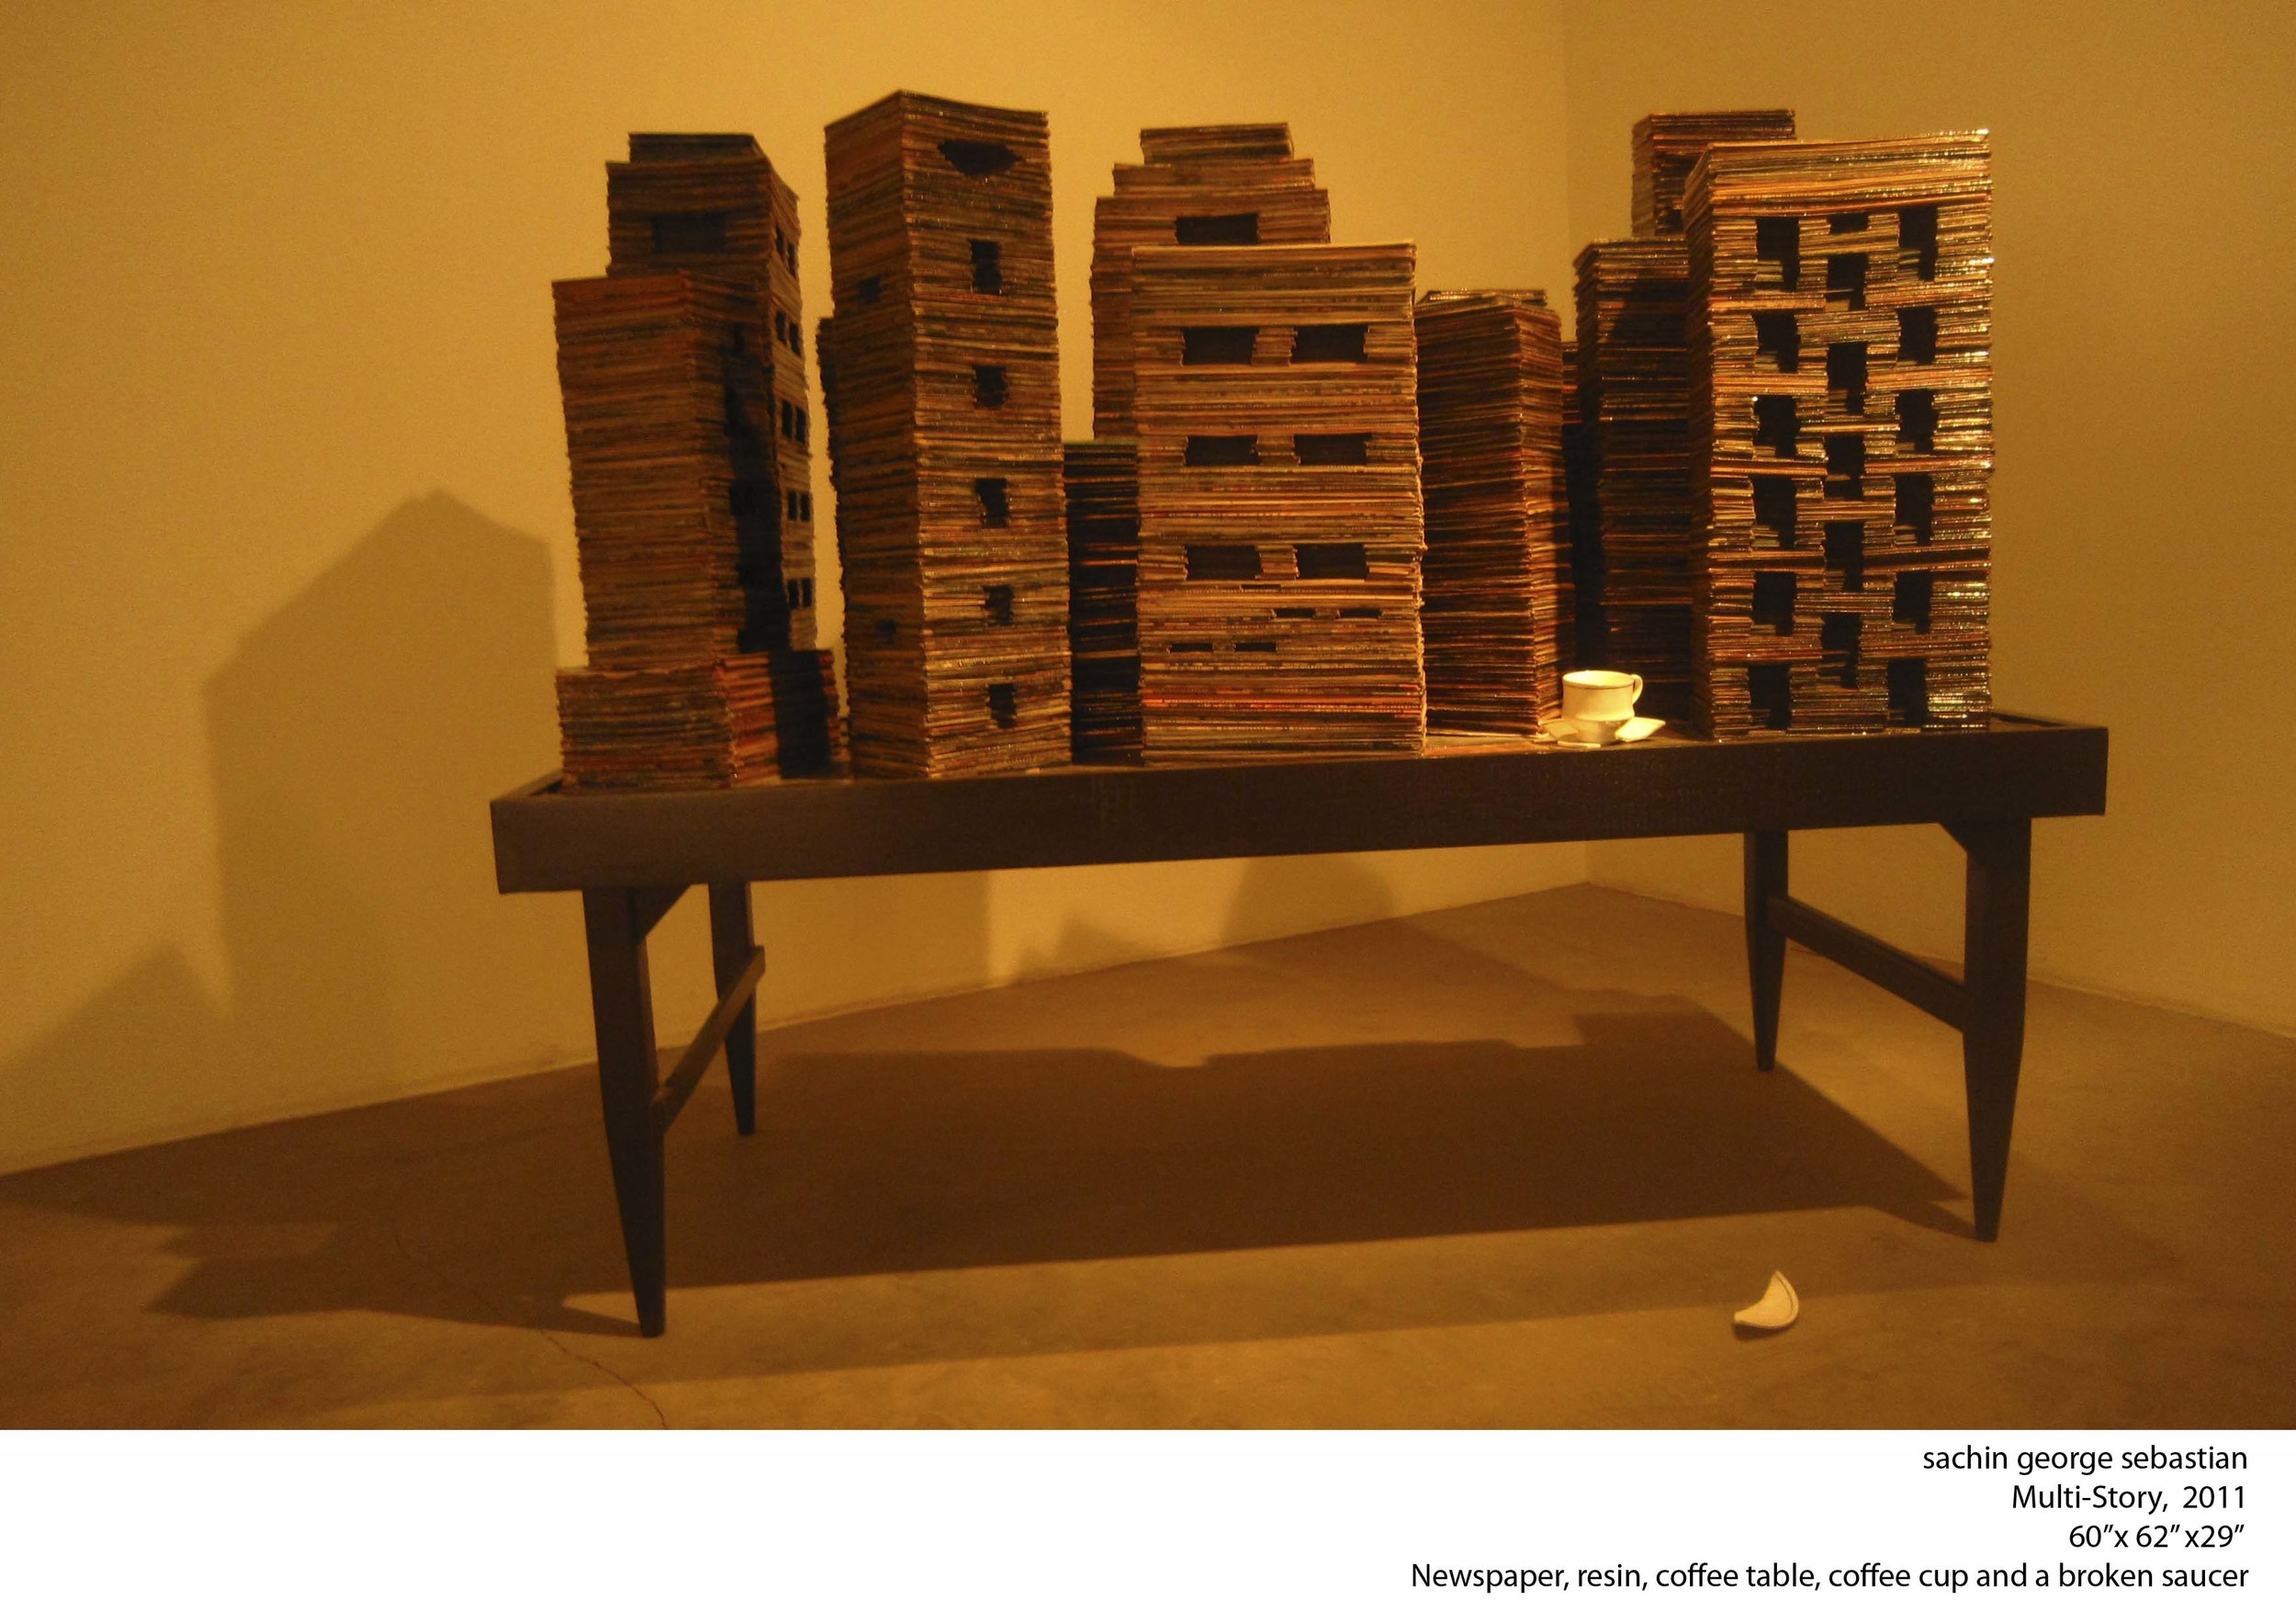 sachin george sebastian, 2011, Multi-story,60x62x29 inches, newspaper stacks, resin, cofee table, cup and saucer.jpg